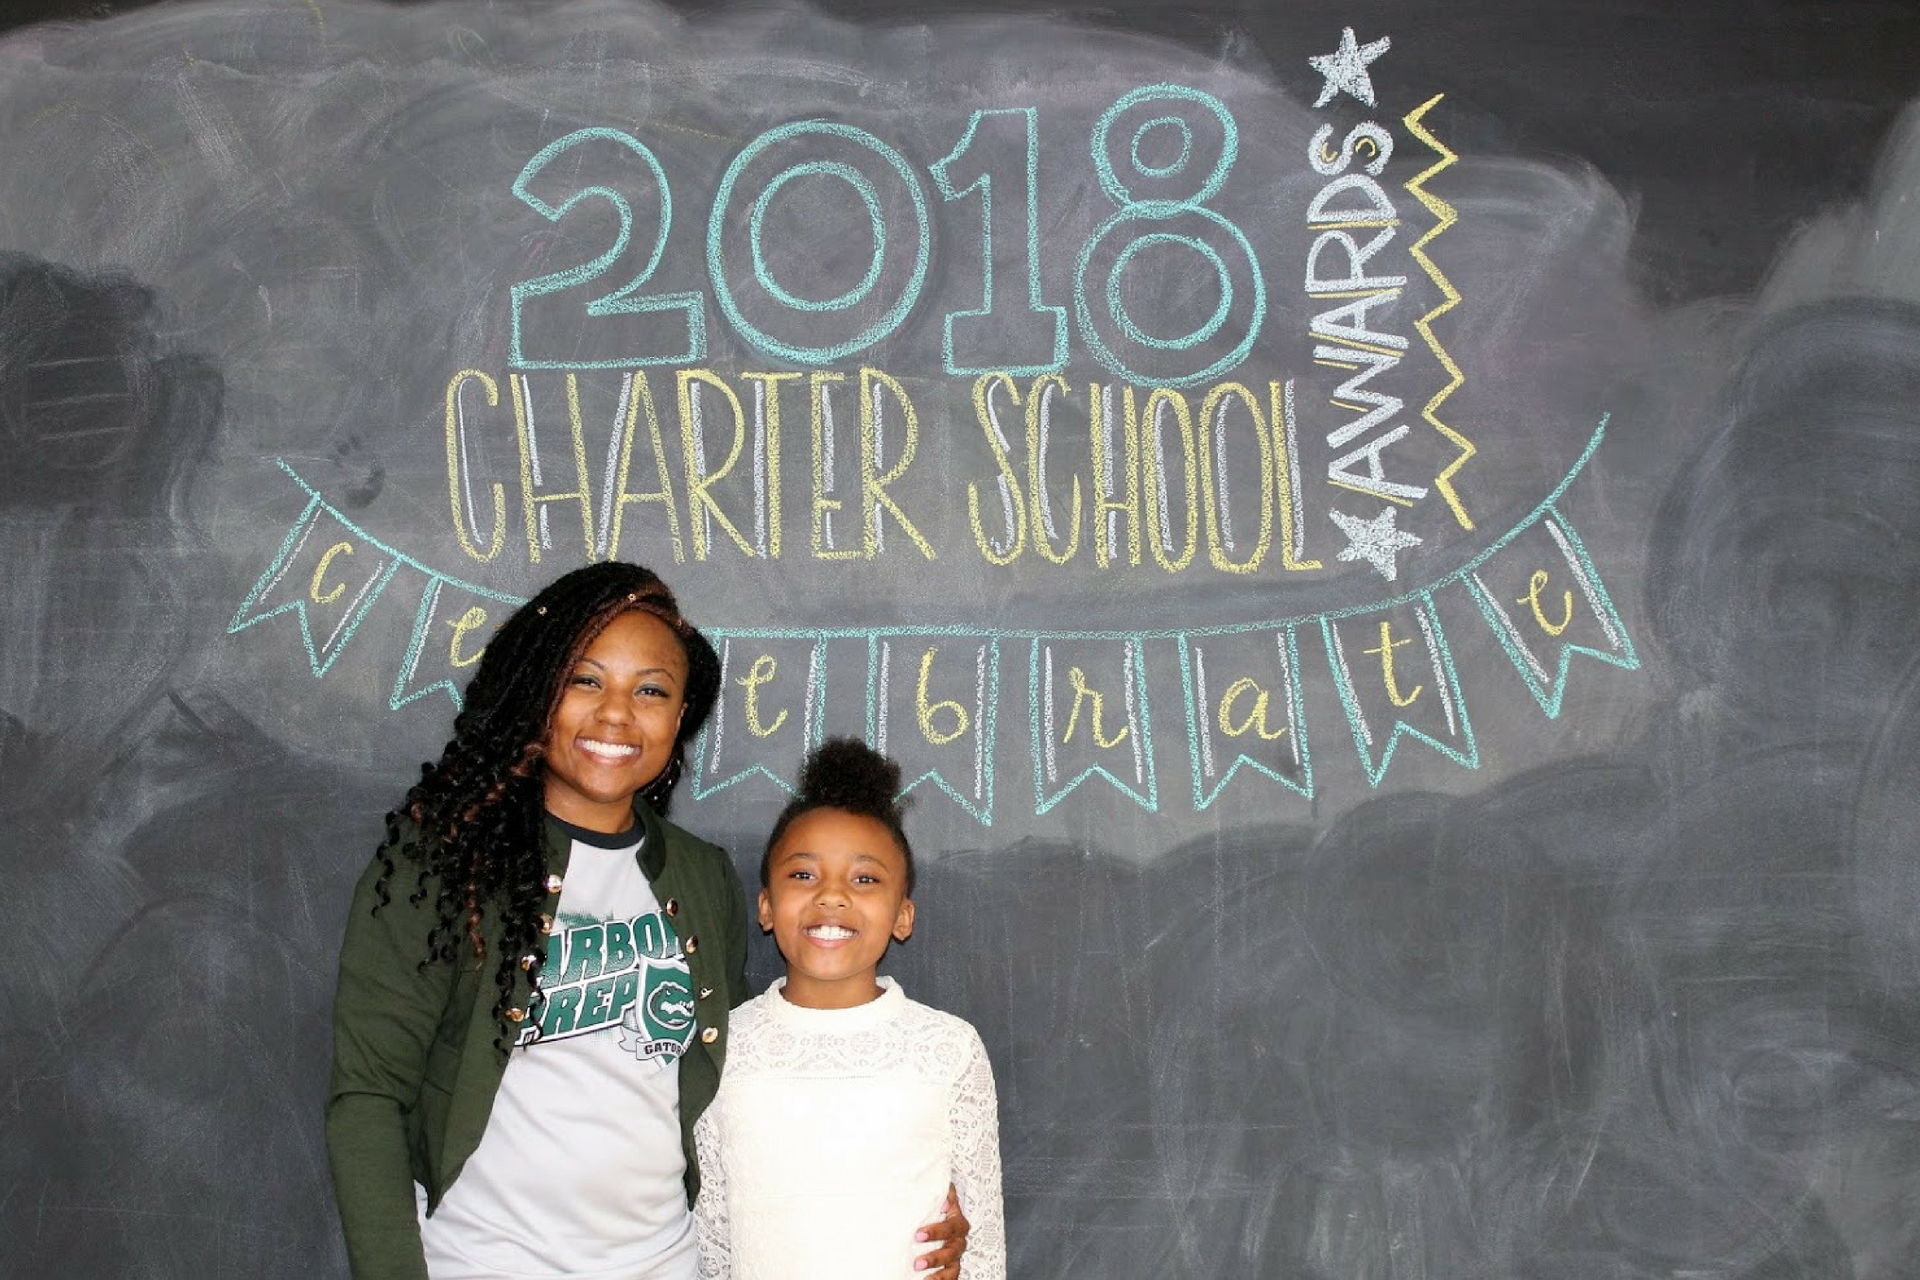 A photo of 2018 Charter School Administrator of the Year finalist, Aquan Grant, with her daughter.